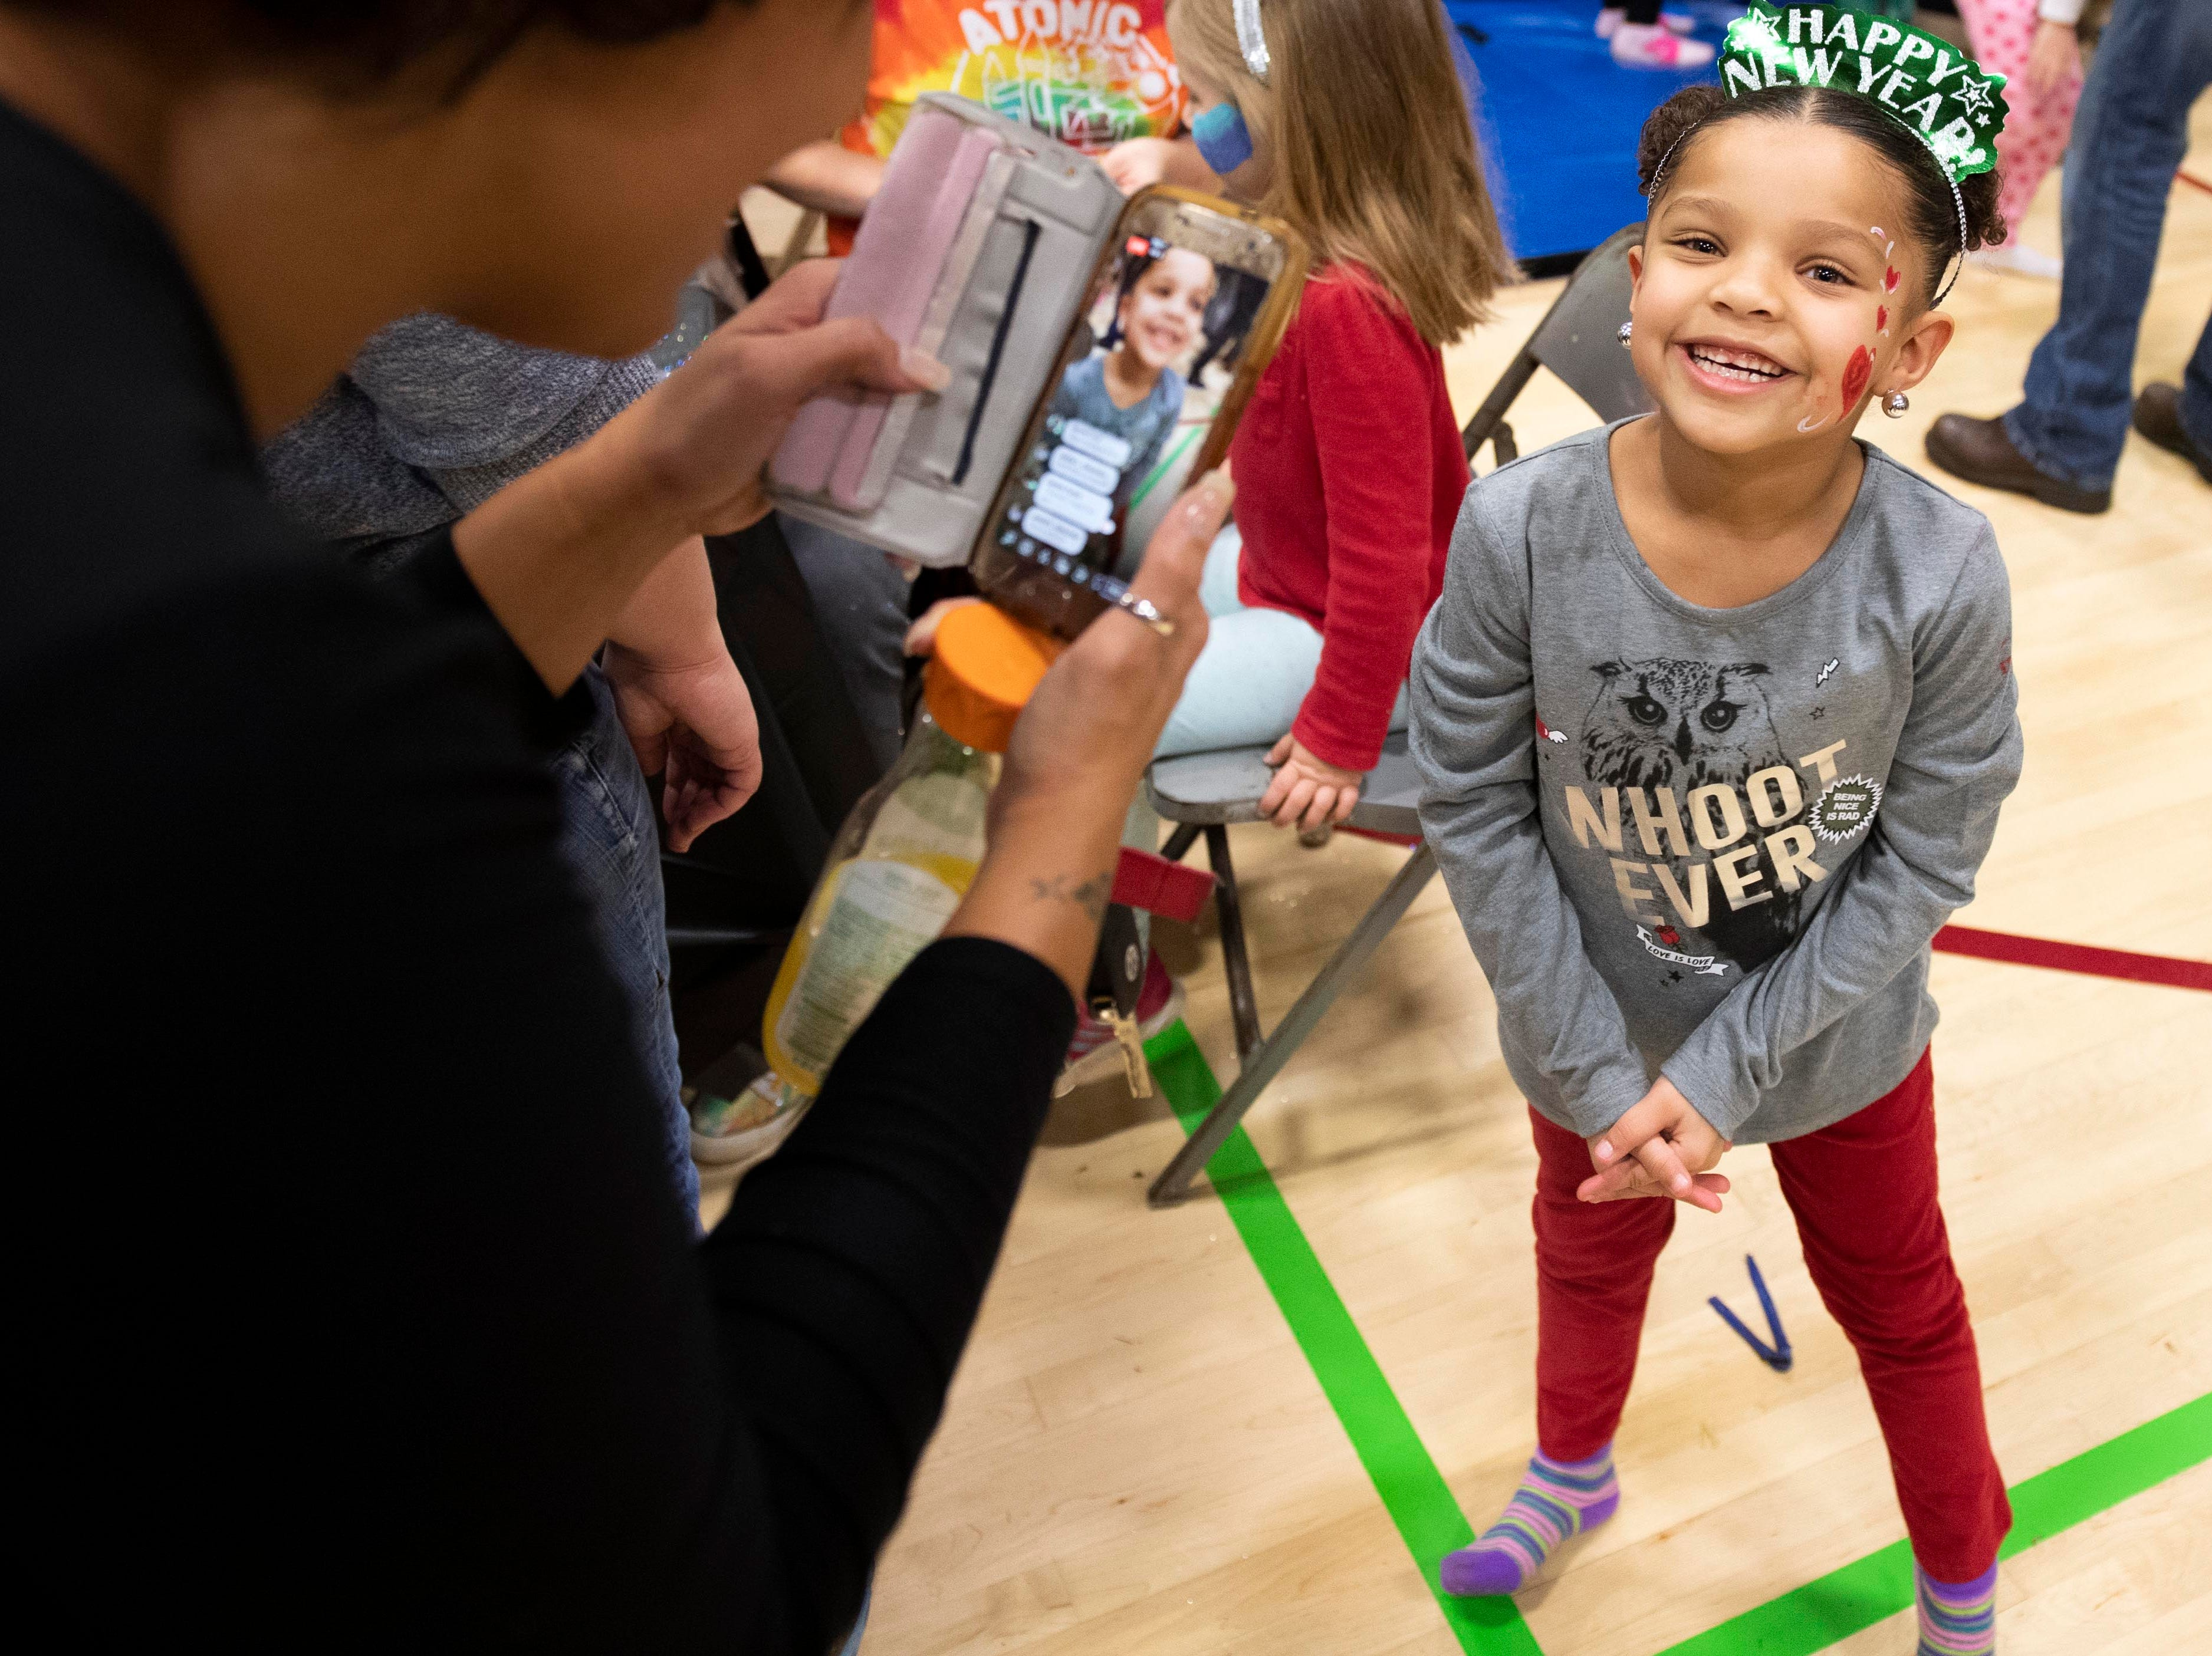 Lola Rae Gomez, 5, laughs while her mom does a Facebook Live during the Children's Countdown to 2019 event at Voni Grimes Gym, Monday, Dec. 31, 2018. Hundreds of kids rang in 2019 with a balloon drop at 8 p.m.